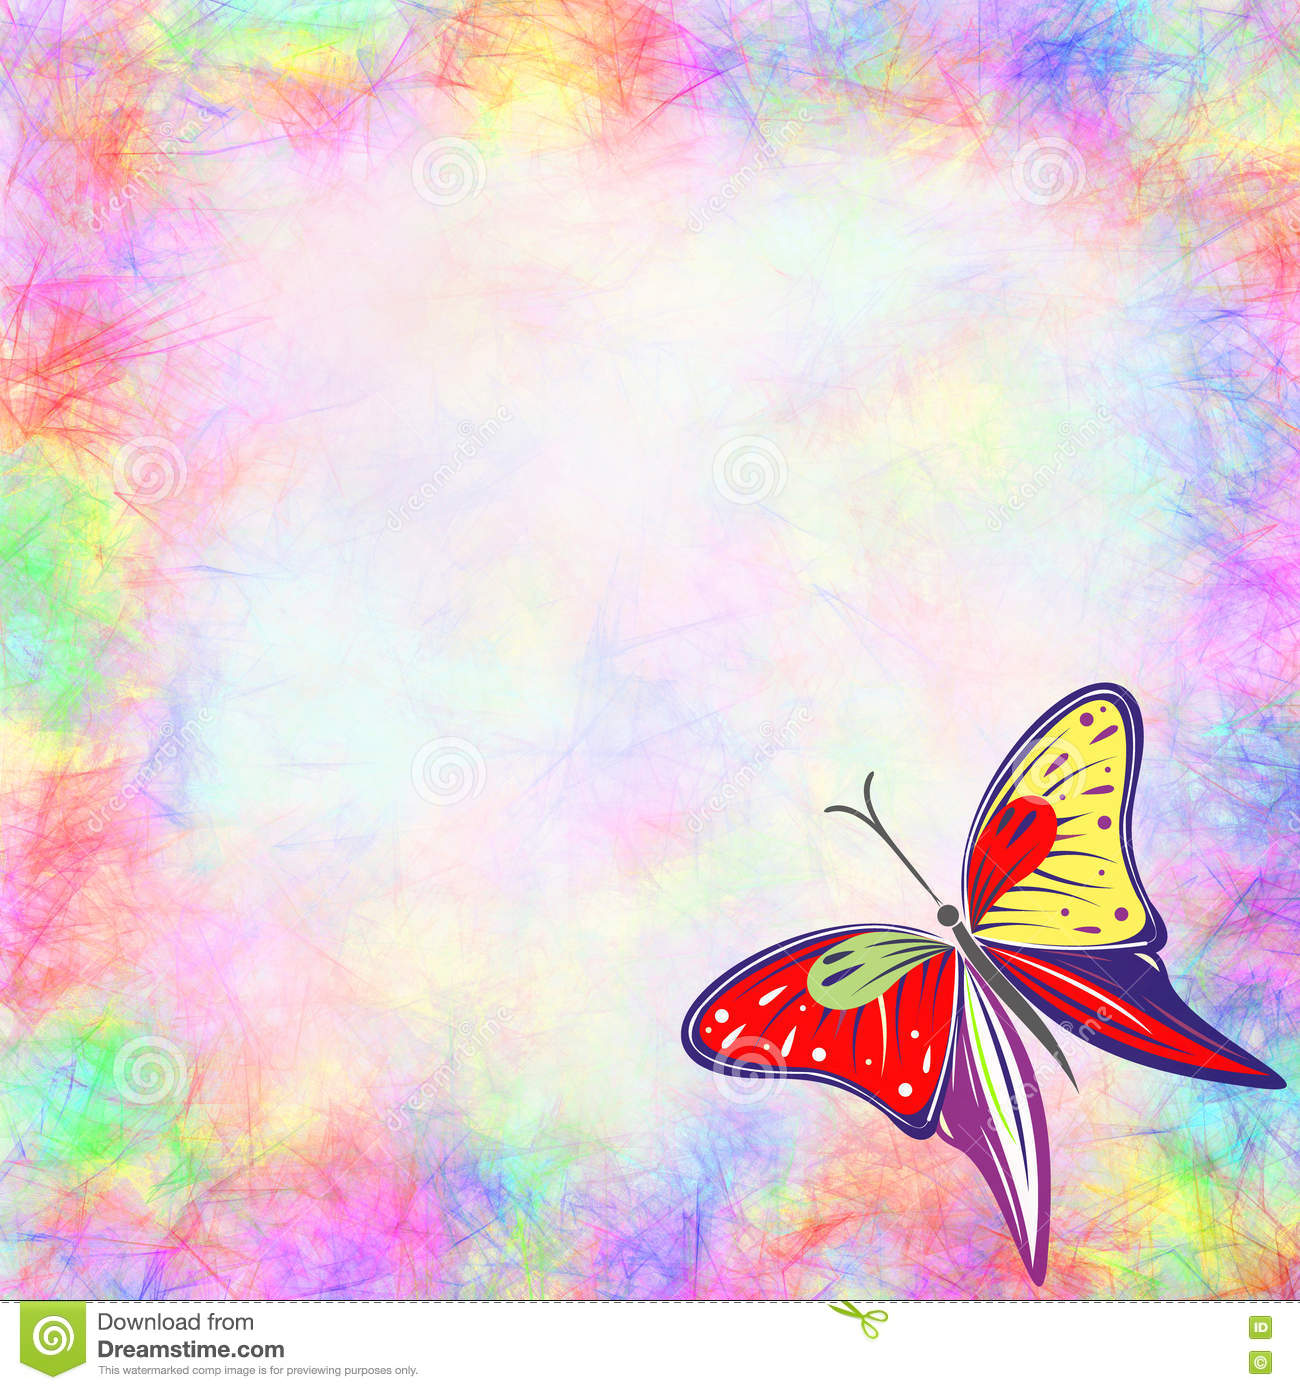 Hand Drawn Textured Watercolor Background With Insect Stock